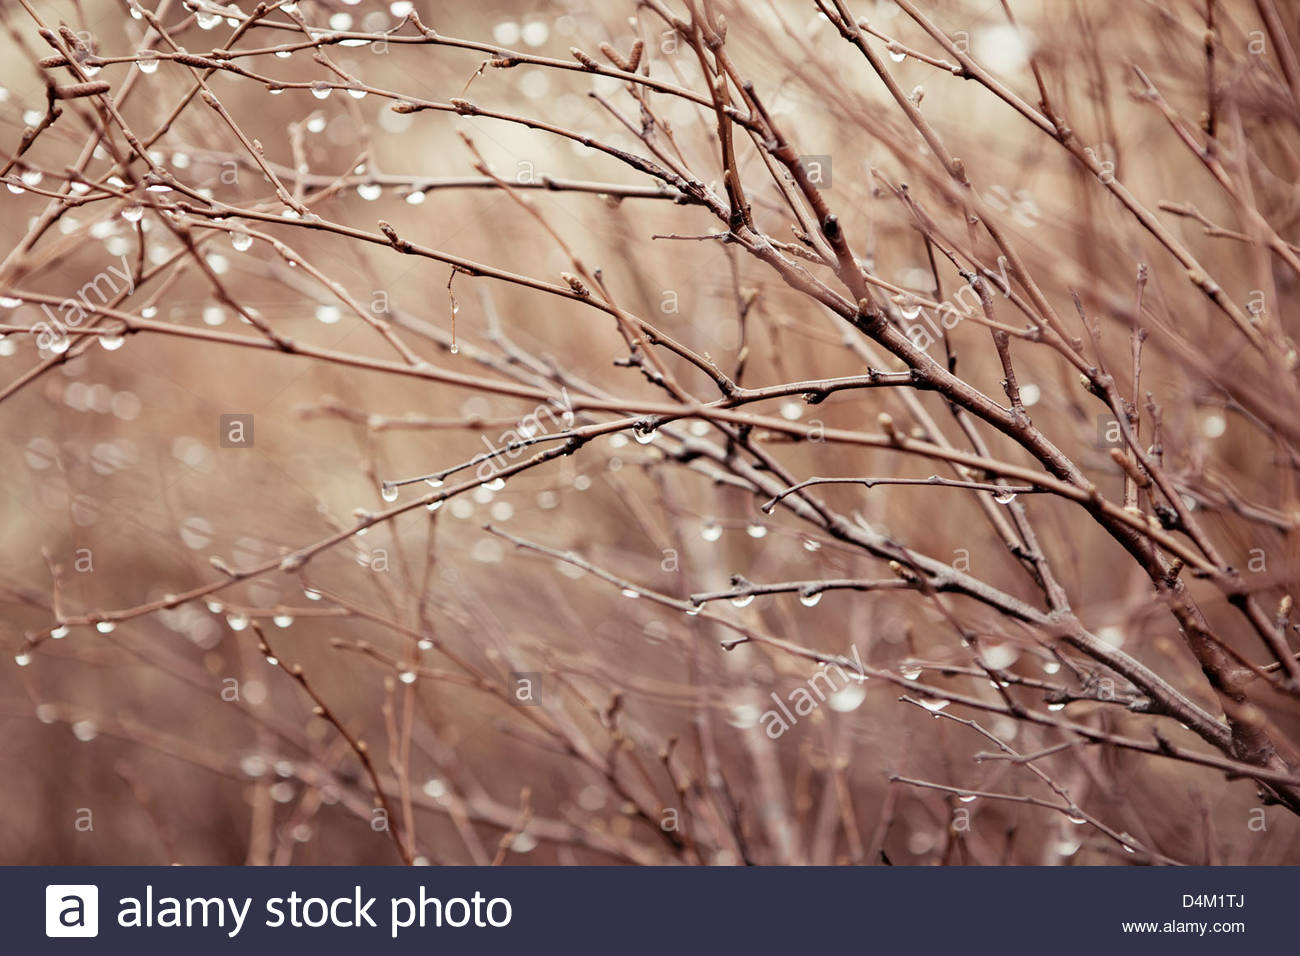 Water droplets on bare branches - Stock Image